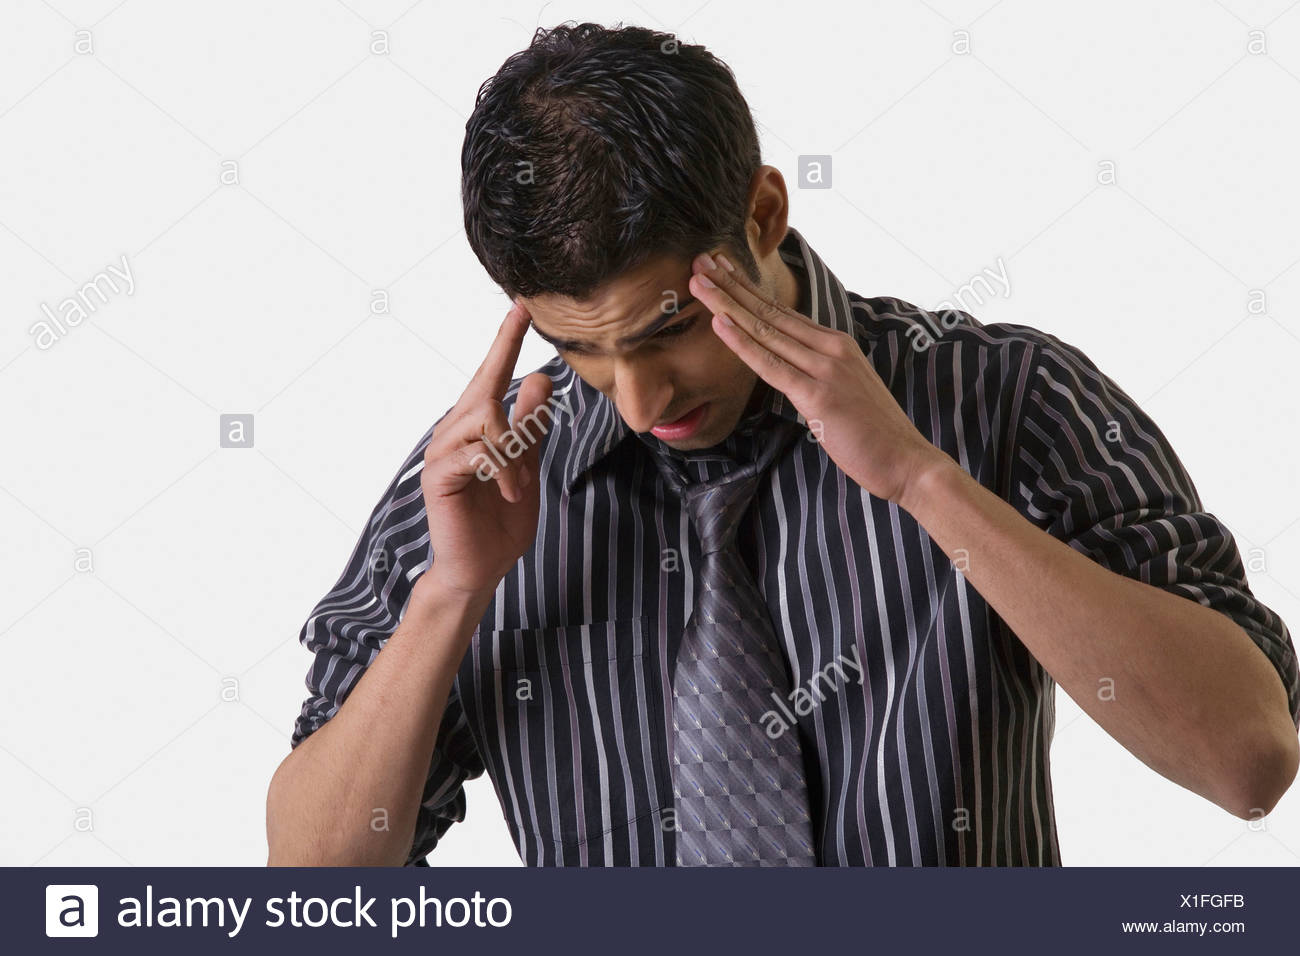 Man getting a headache - Stock Image